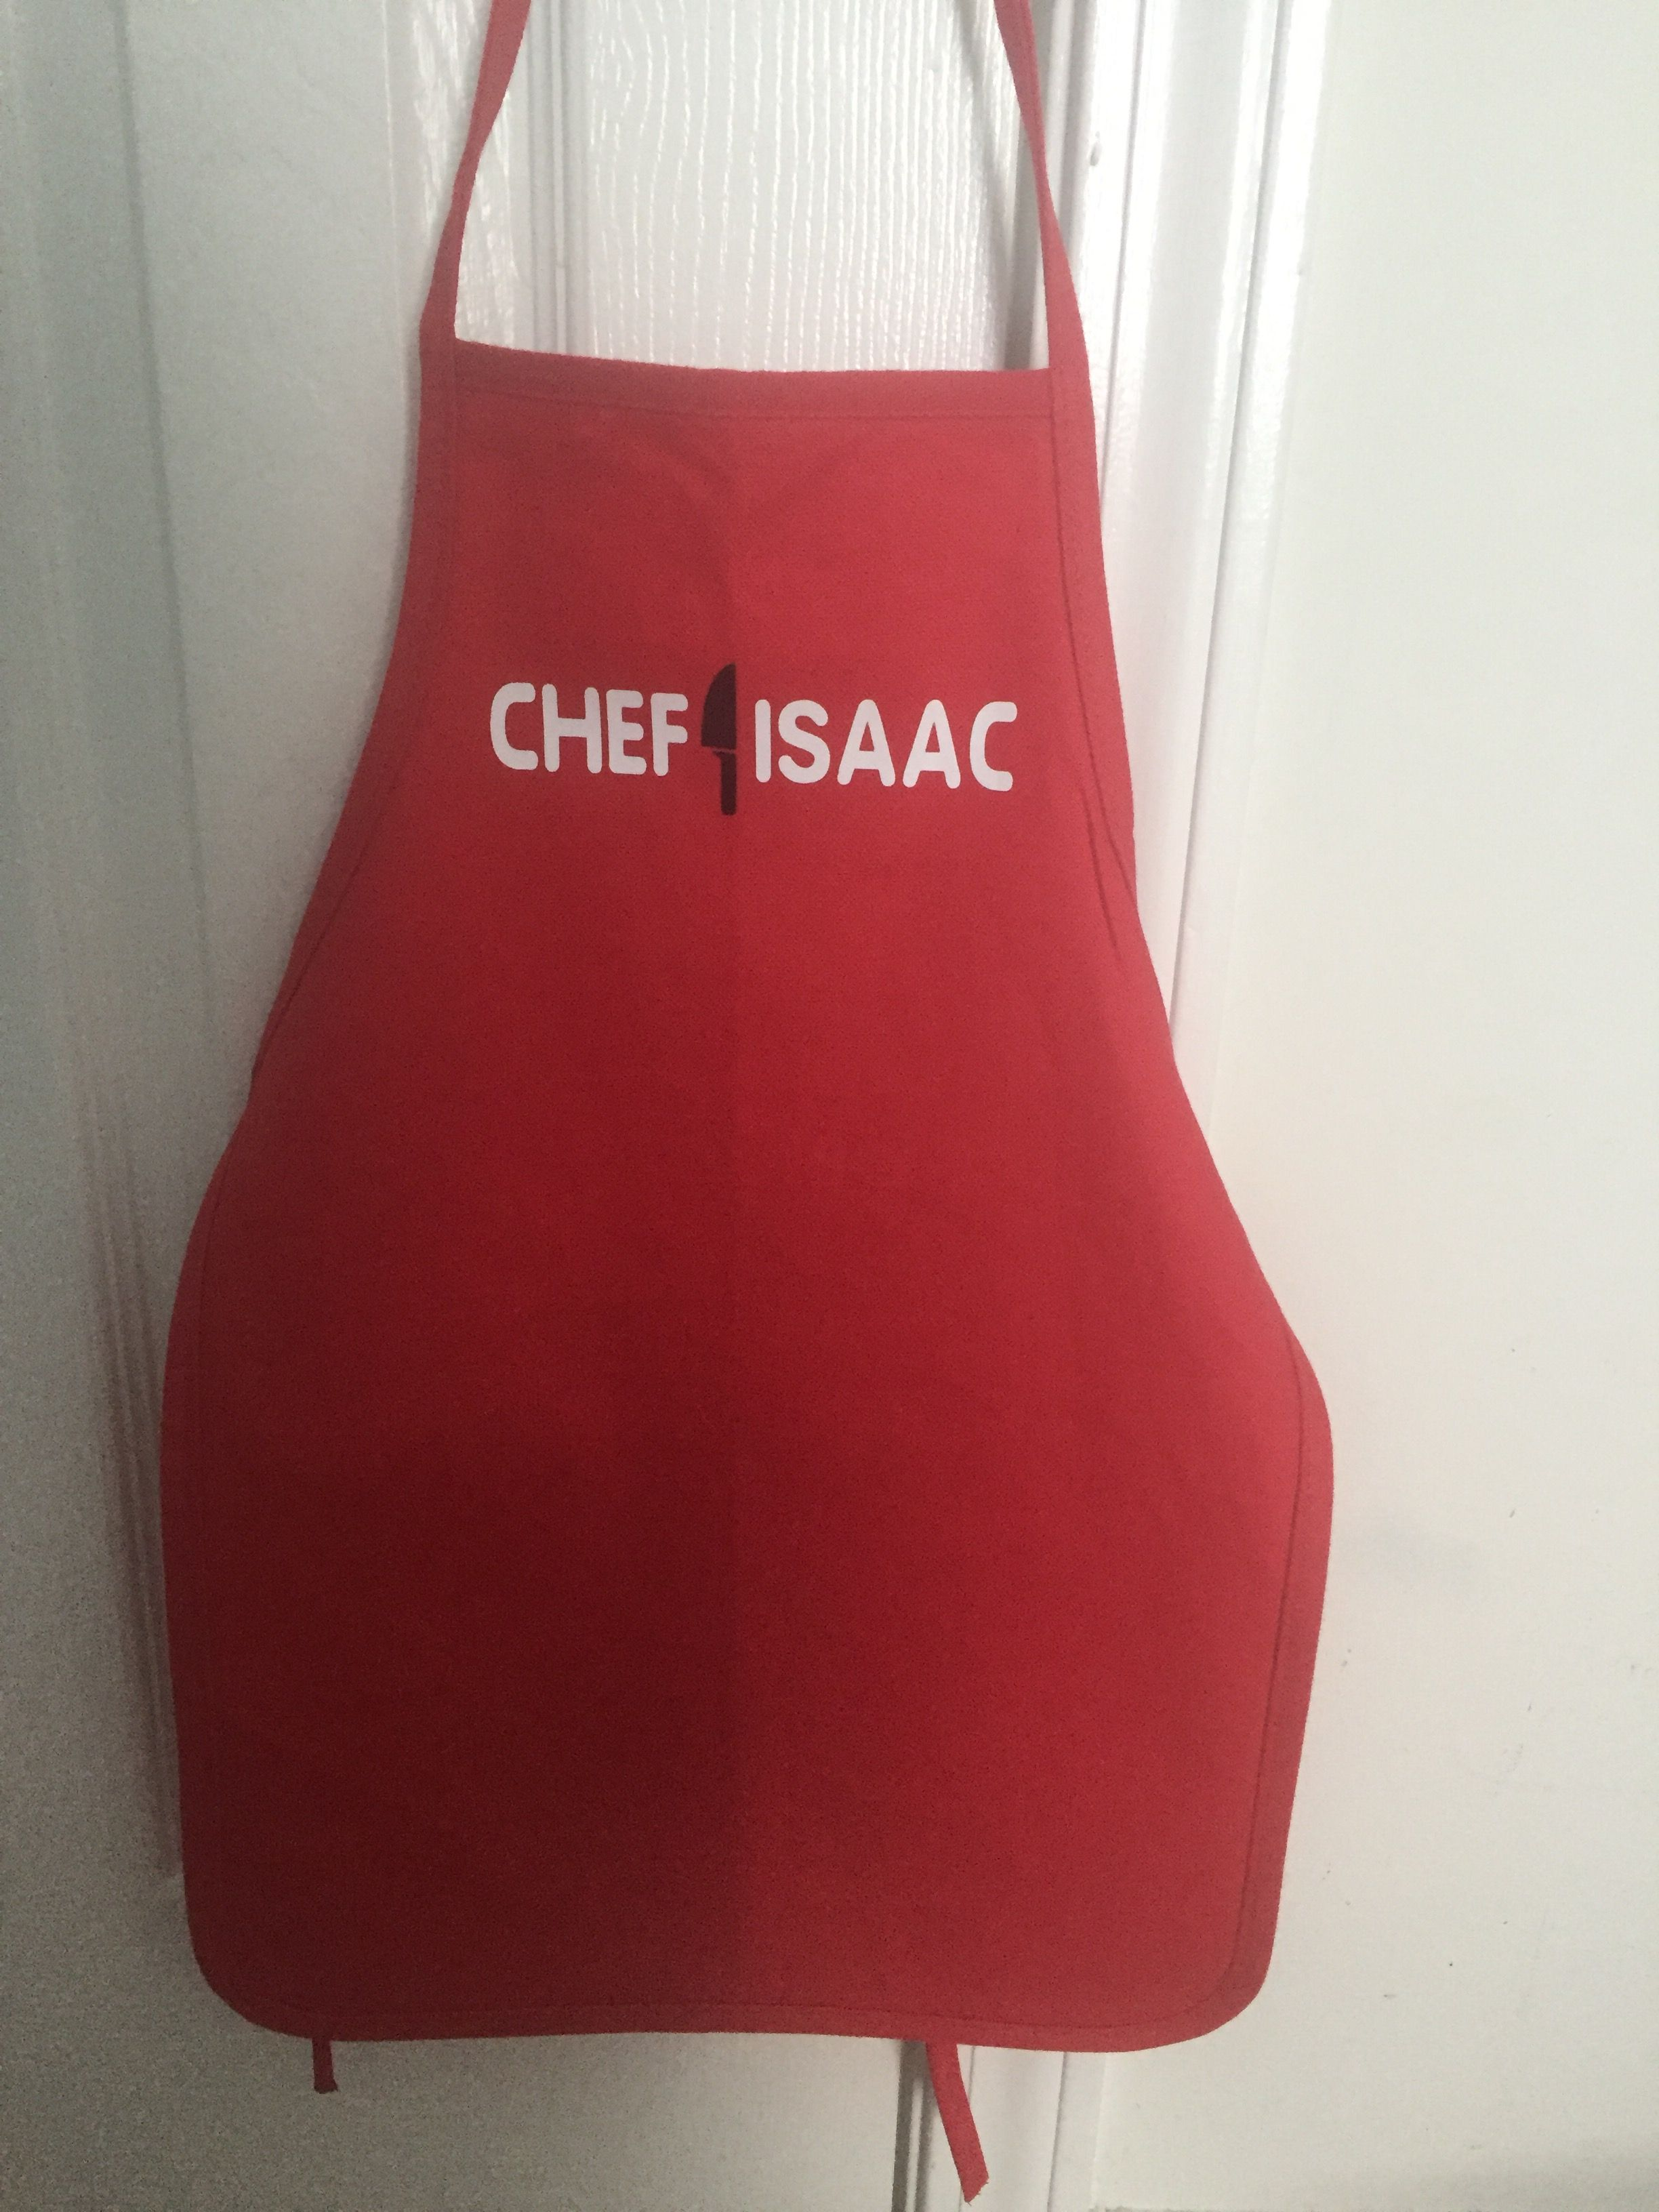 Easy To Make Kid S Aprons Made With Cricut Heat Transfer Vinyl Cricut Heat Transfer Vinyl Kids Apron Heat Transfer Vinyl